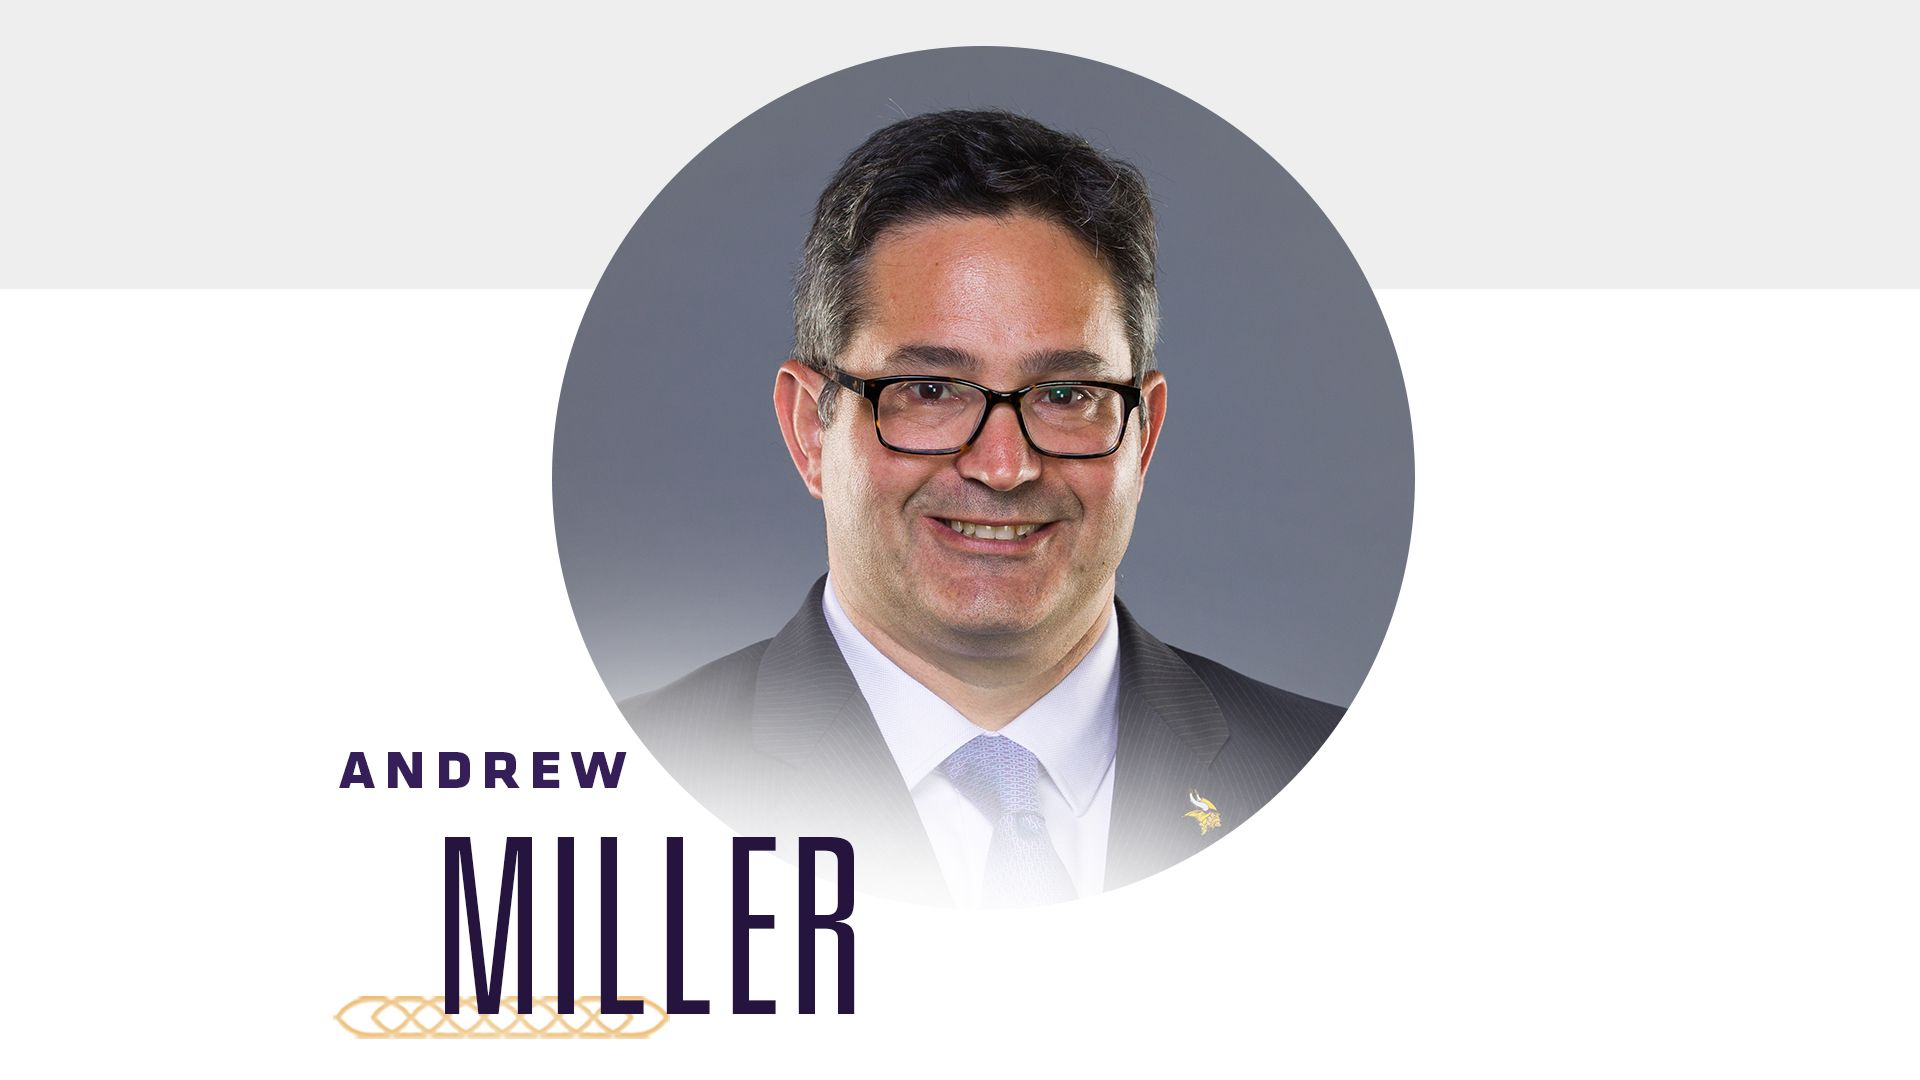 Andrew Miller- Chief Operating Officer, Minnesota Vikings